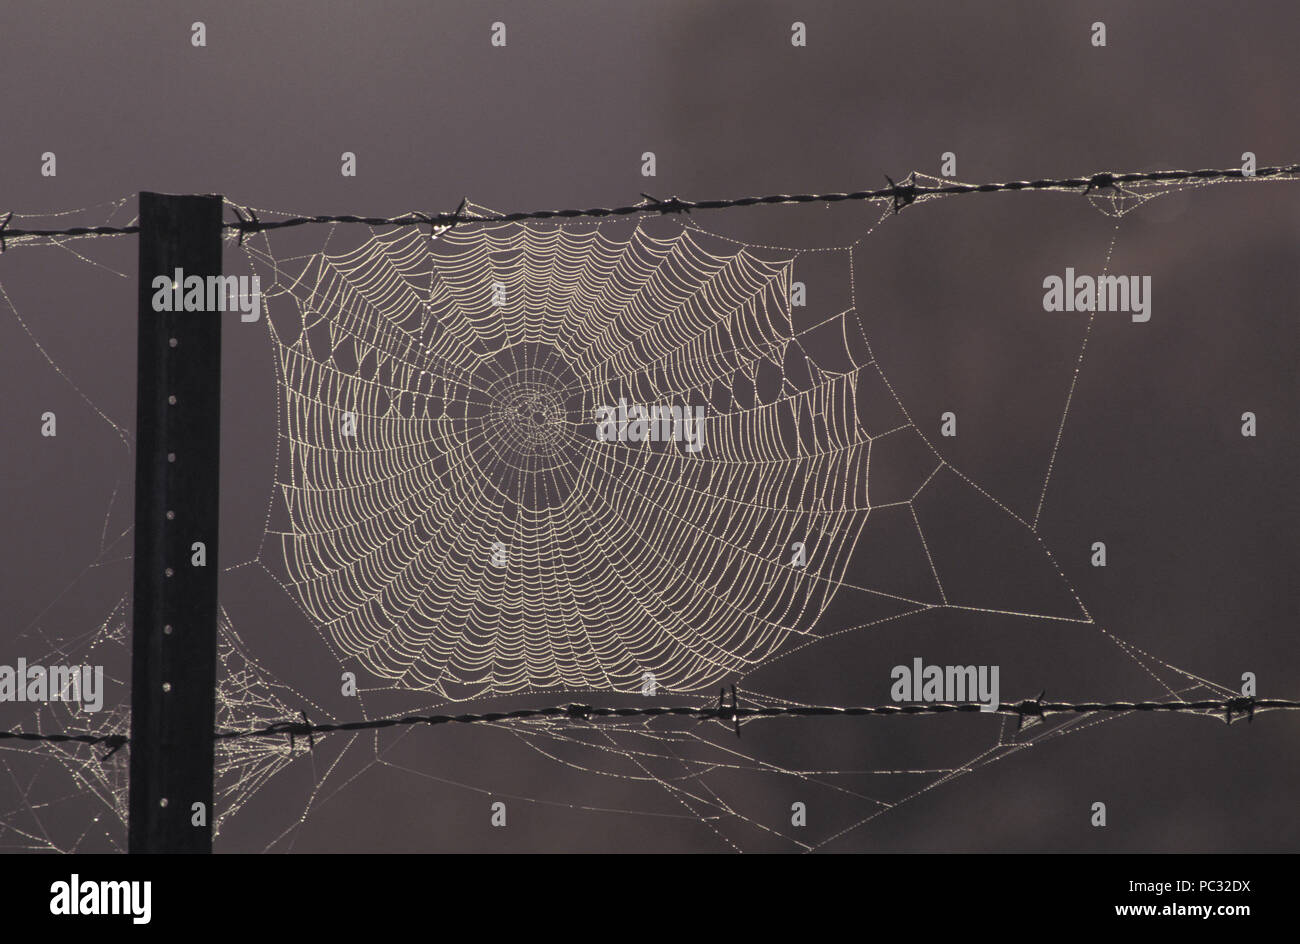 SPIDER WEB ON BARBED WIRE FENCE WITH RAIN DROPS, RURAL NEW SOUTH WALES, AUSTRALIA - Stock Image